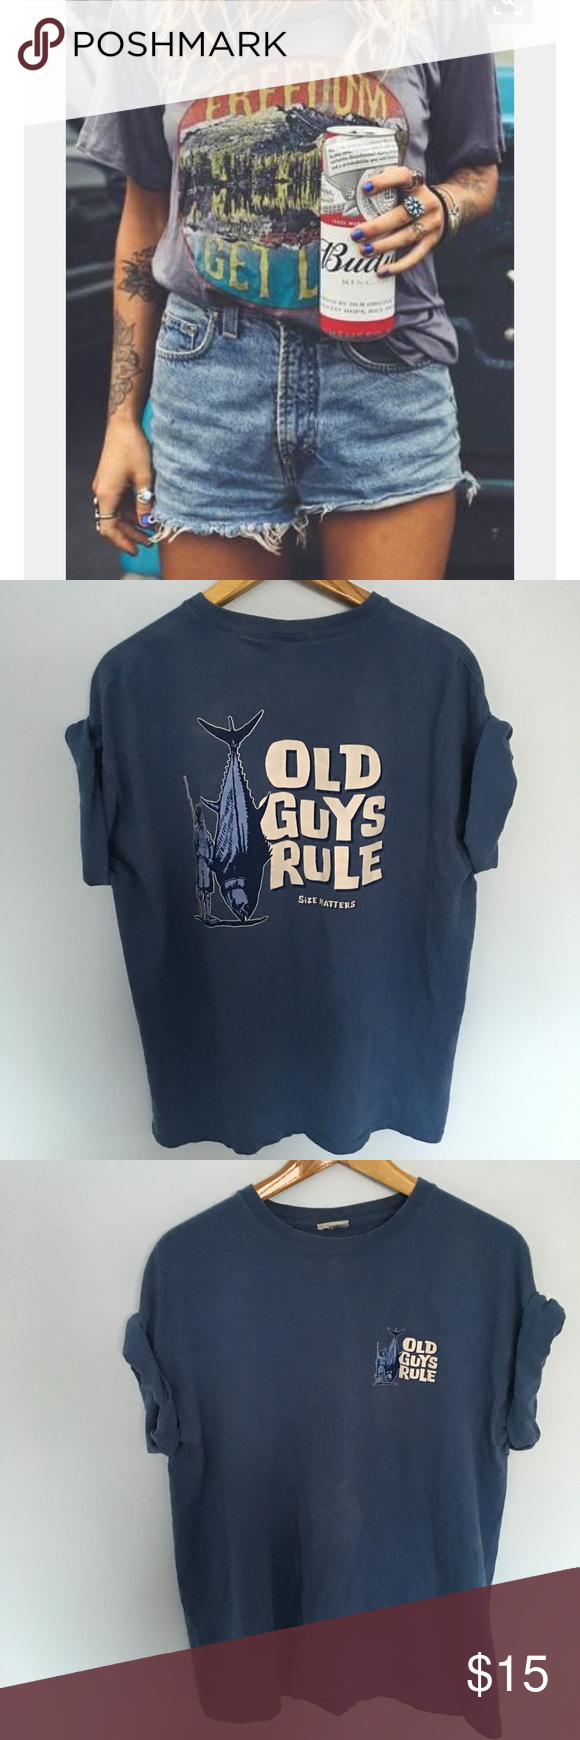 Vintage tee shirt Blue Steal the LK This shirt is on trend right now. Very tongue and cheek cute! No flaws. Perfect. XXL Tops Tees - Short Sleeve